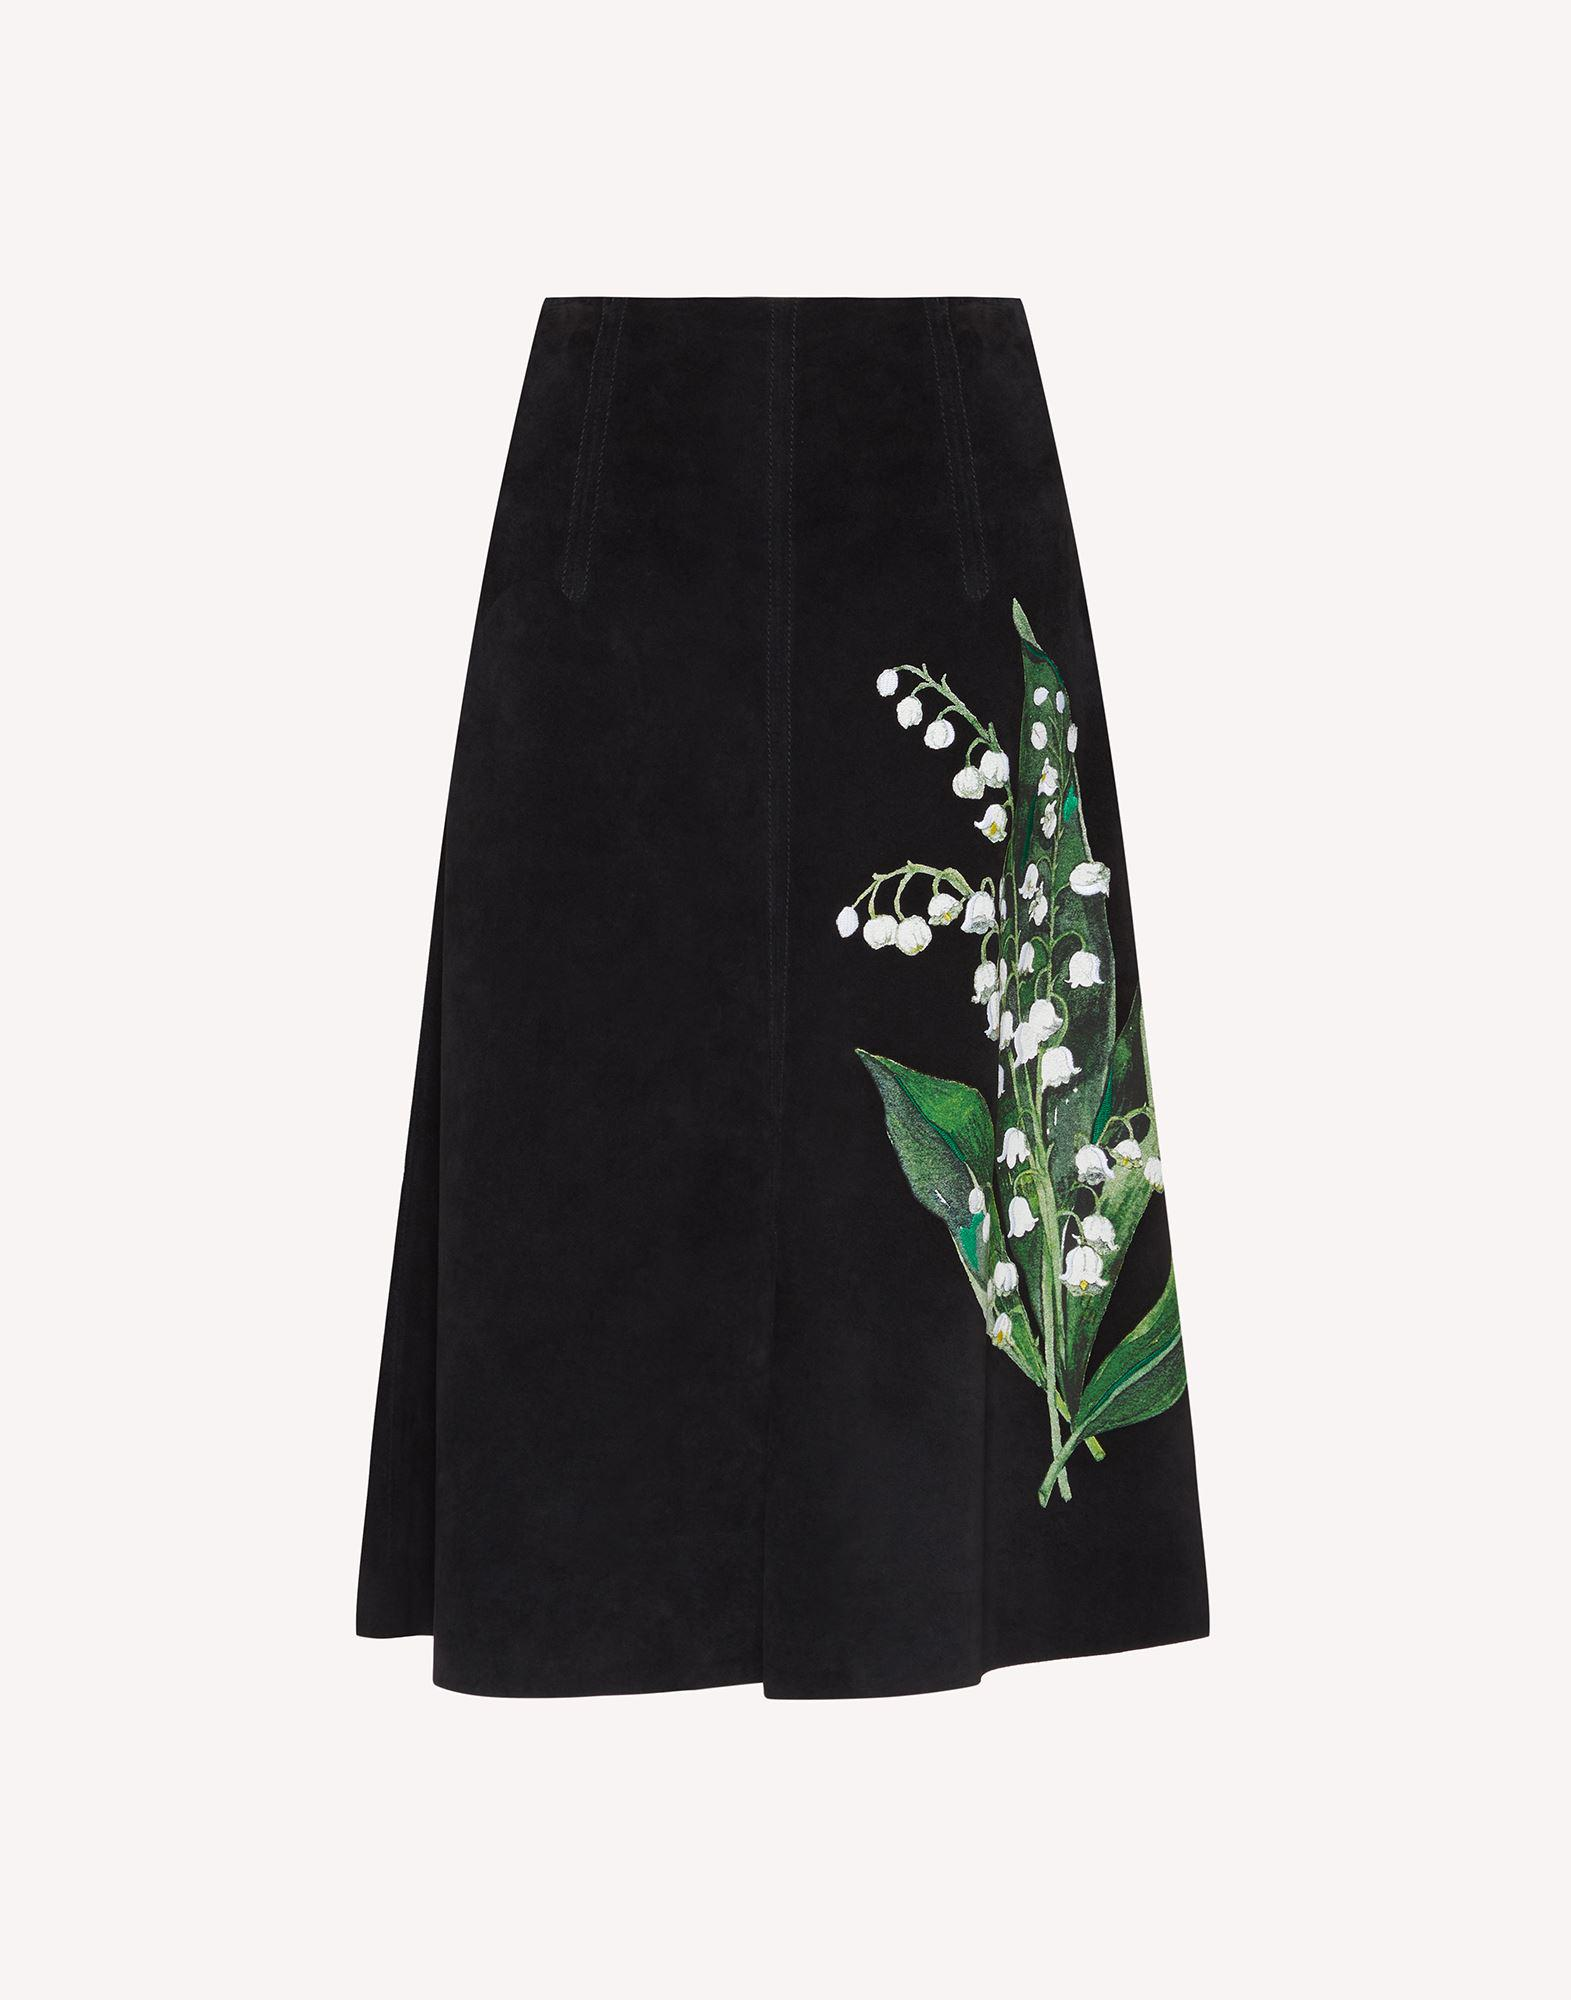 A-LINE SUEDE SKIRT WITH MAY LILY EMBROIDERY 4